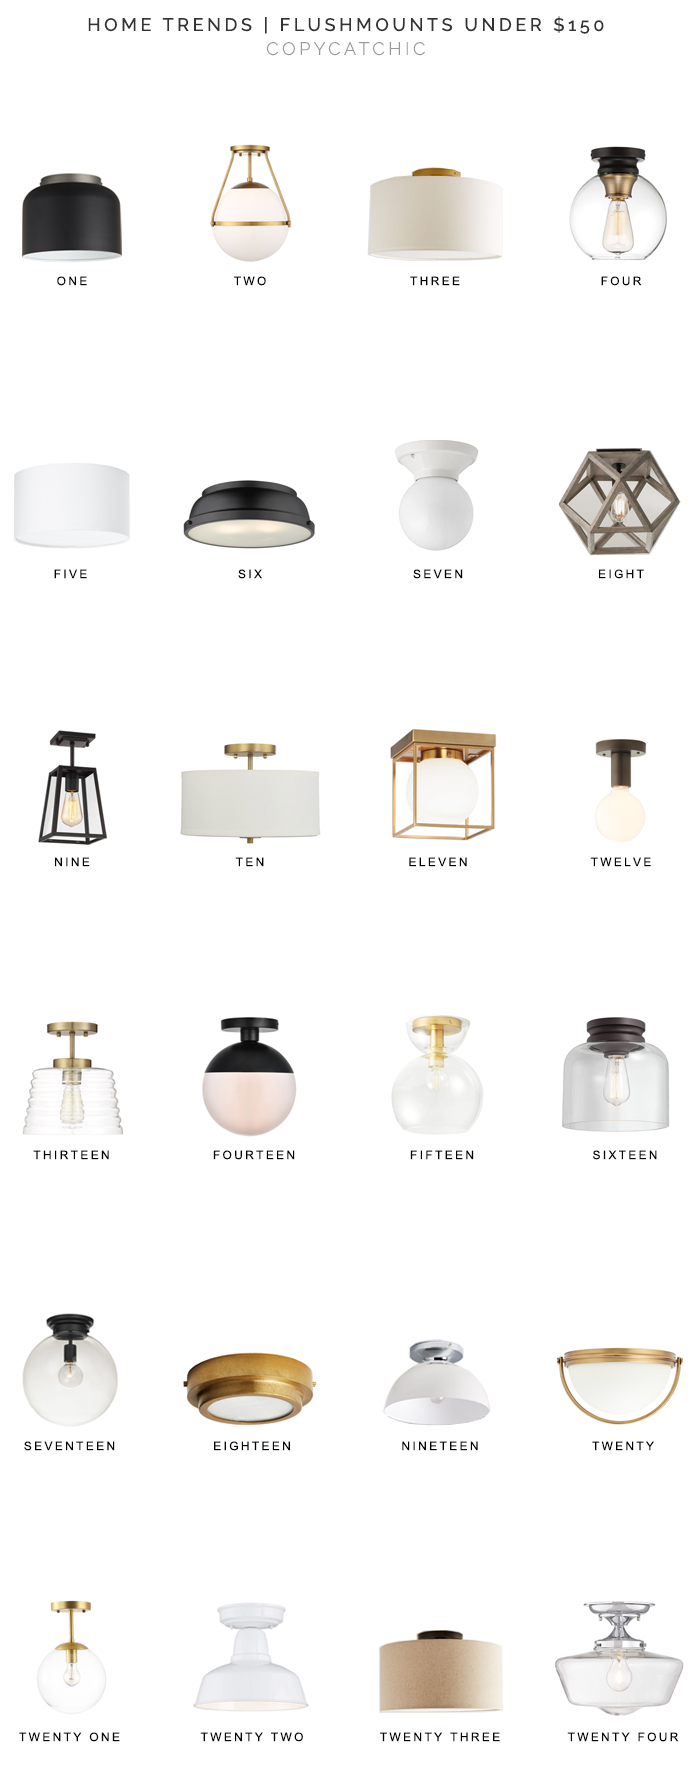 flushmount light fixtures for less, flushmount lighting, flushmount lights under $150, copycatchic luxe living for less, budget home decor and design, daily finds, home trends, sales, budget travel and room redos